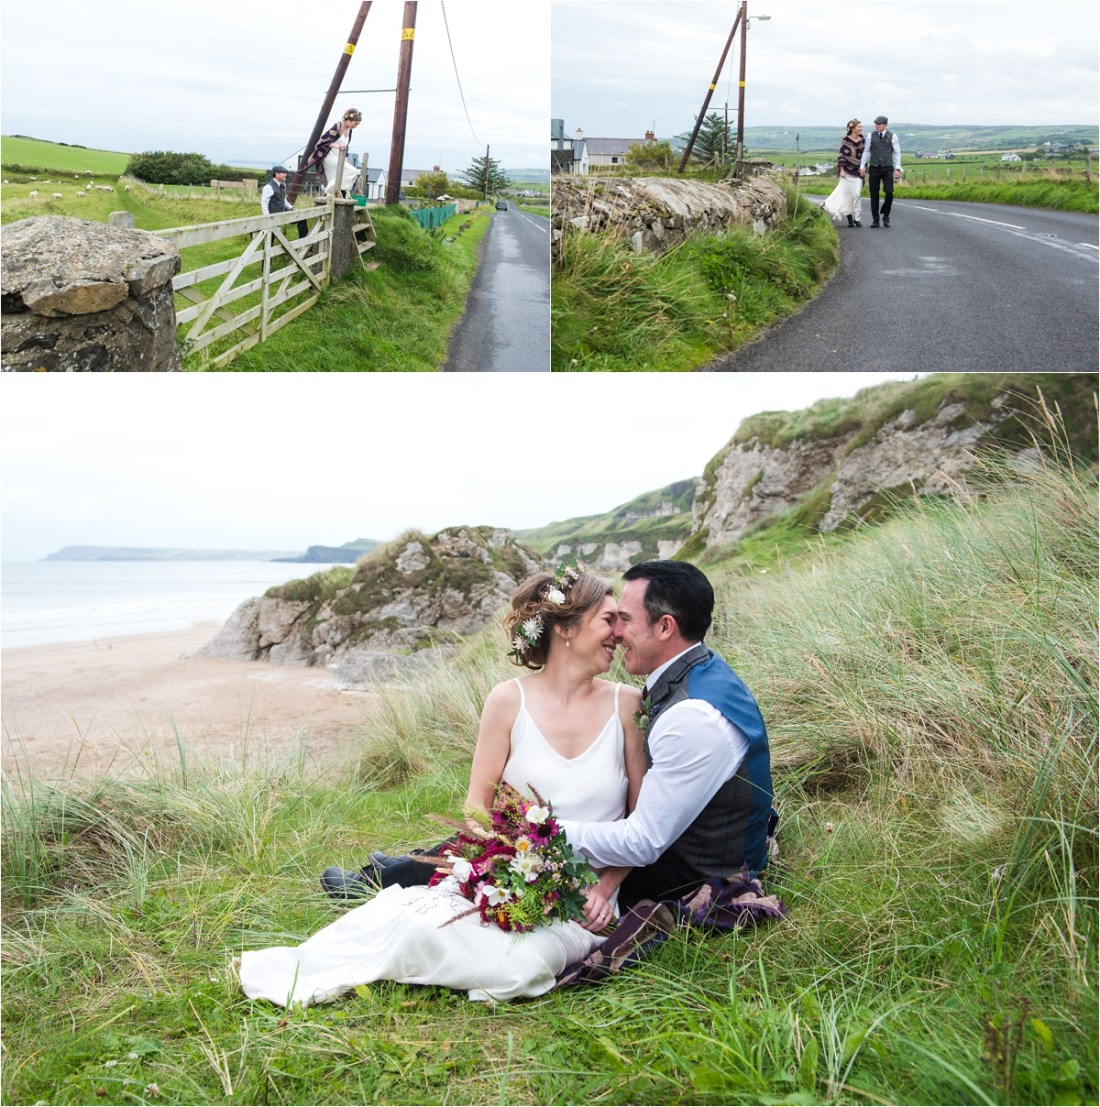 Bride & groom walk down a country lane by Collette Creative